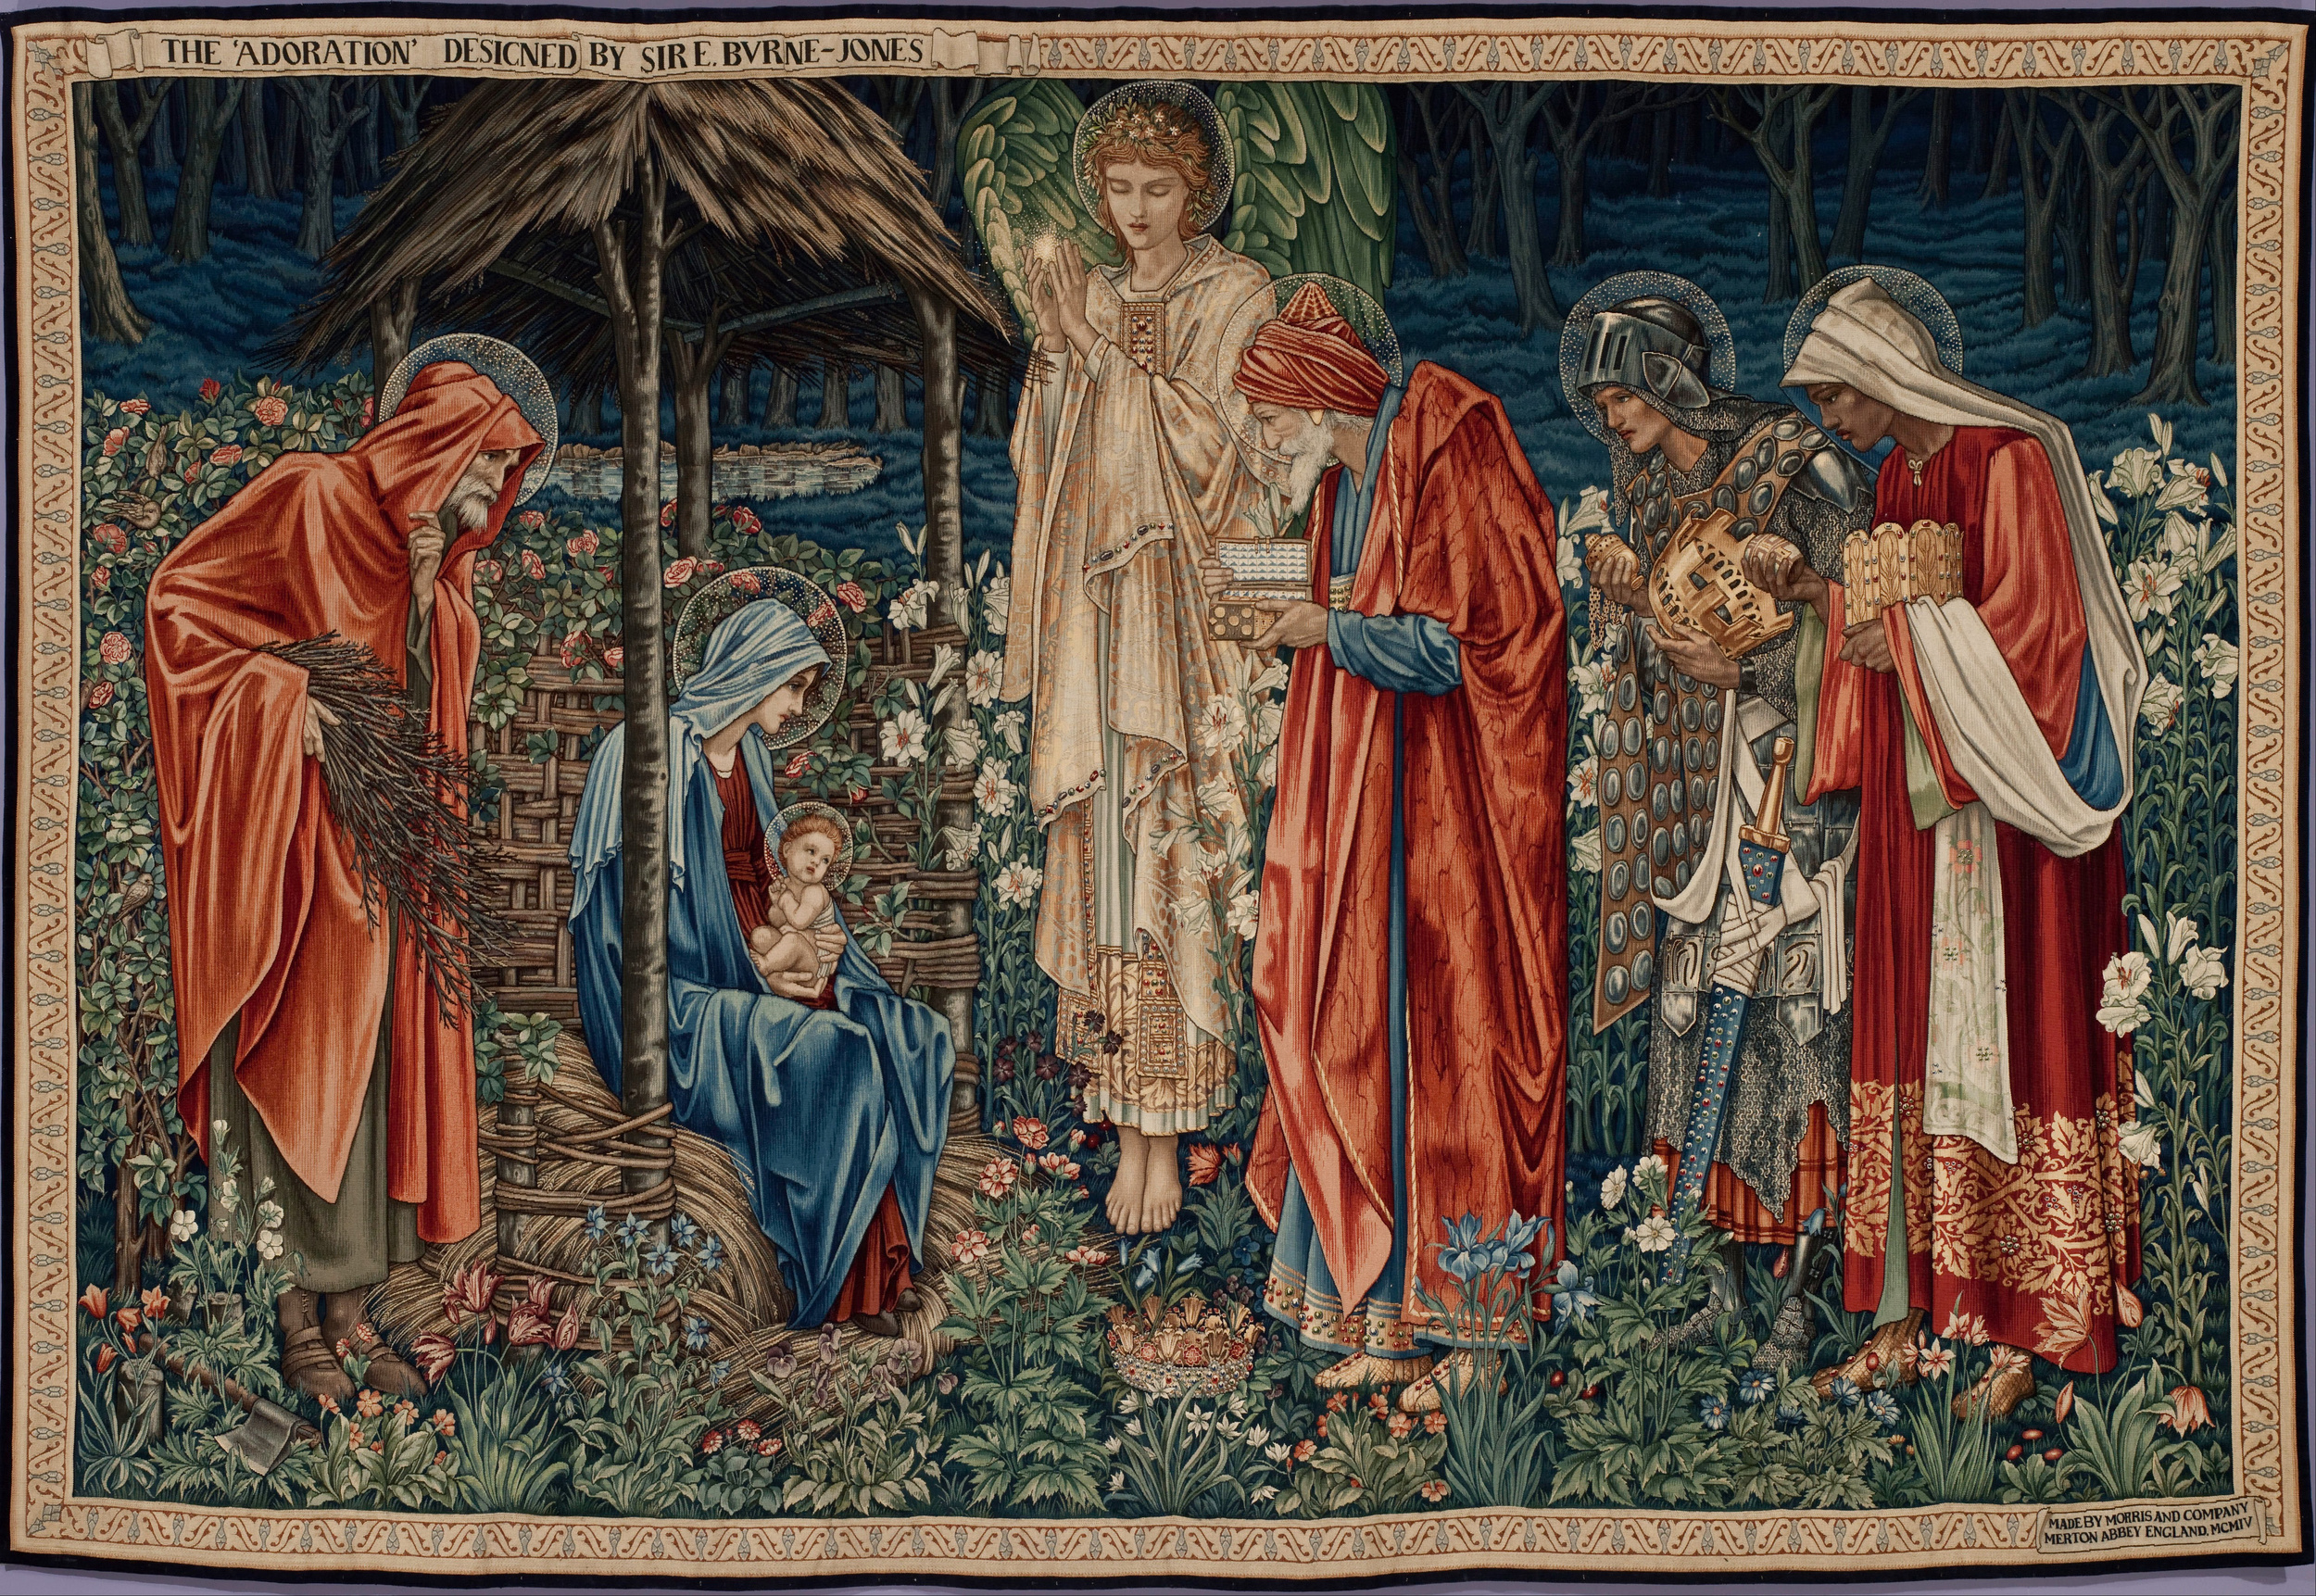 "Edward Burne-Jones - The Adoration of the Magi - Google Art Project"" by Edward Burne-Jones - uQHHRCrCrHZVdw at Google Cultural Institute. Licensed under Public domain via Wikimedia Commons"